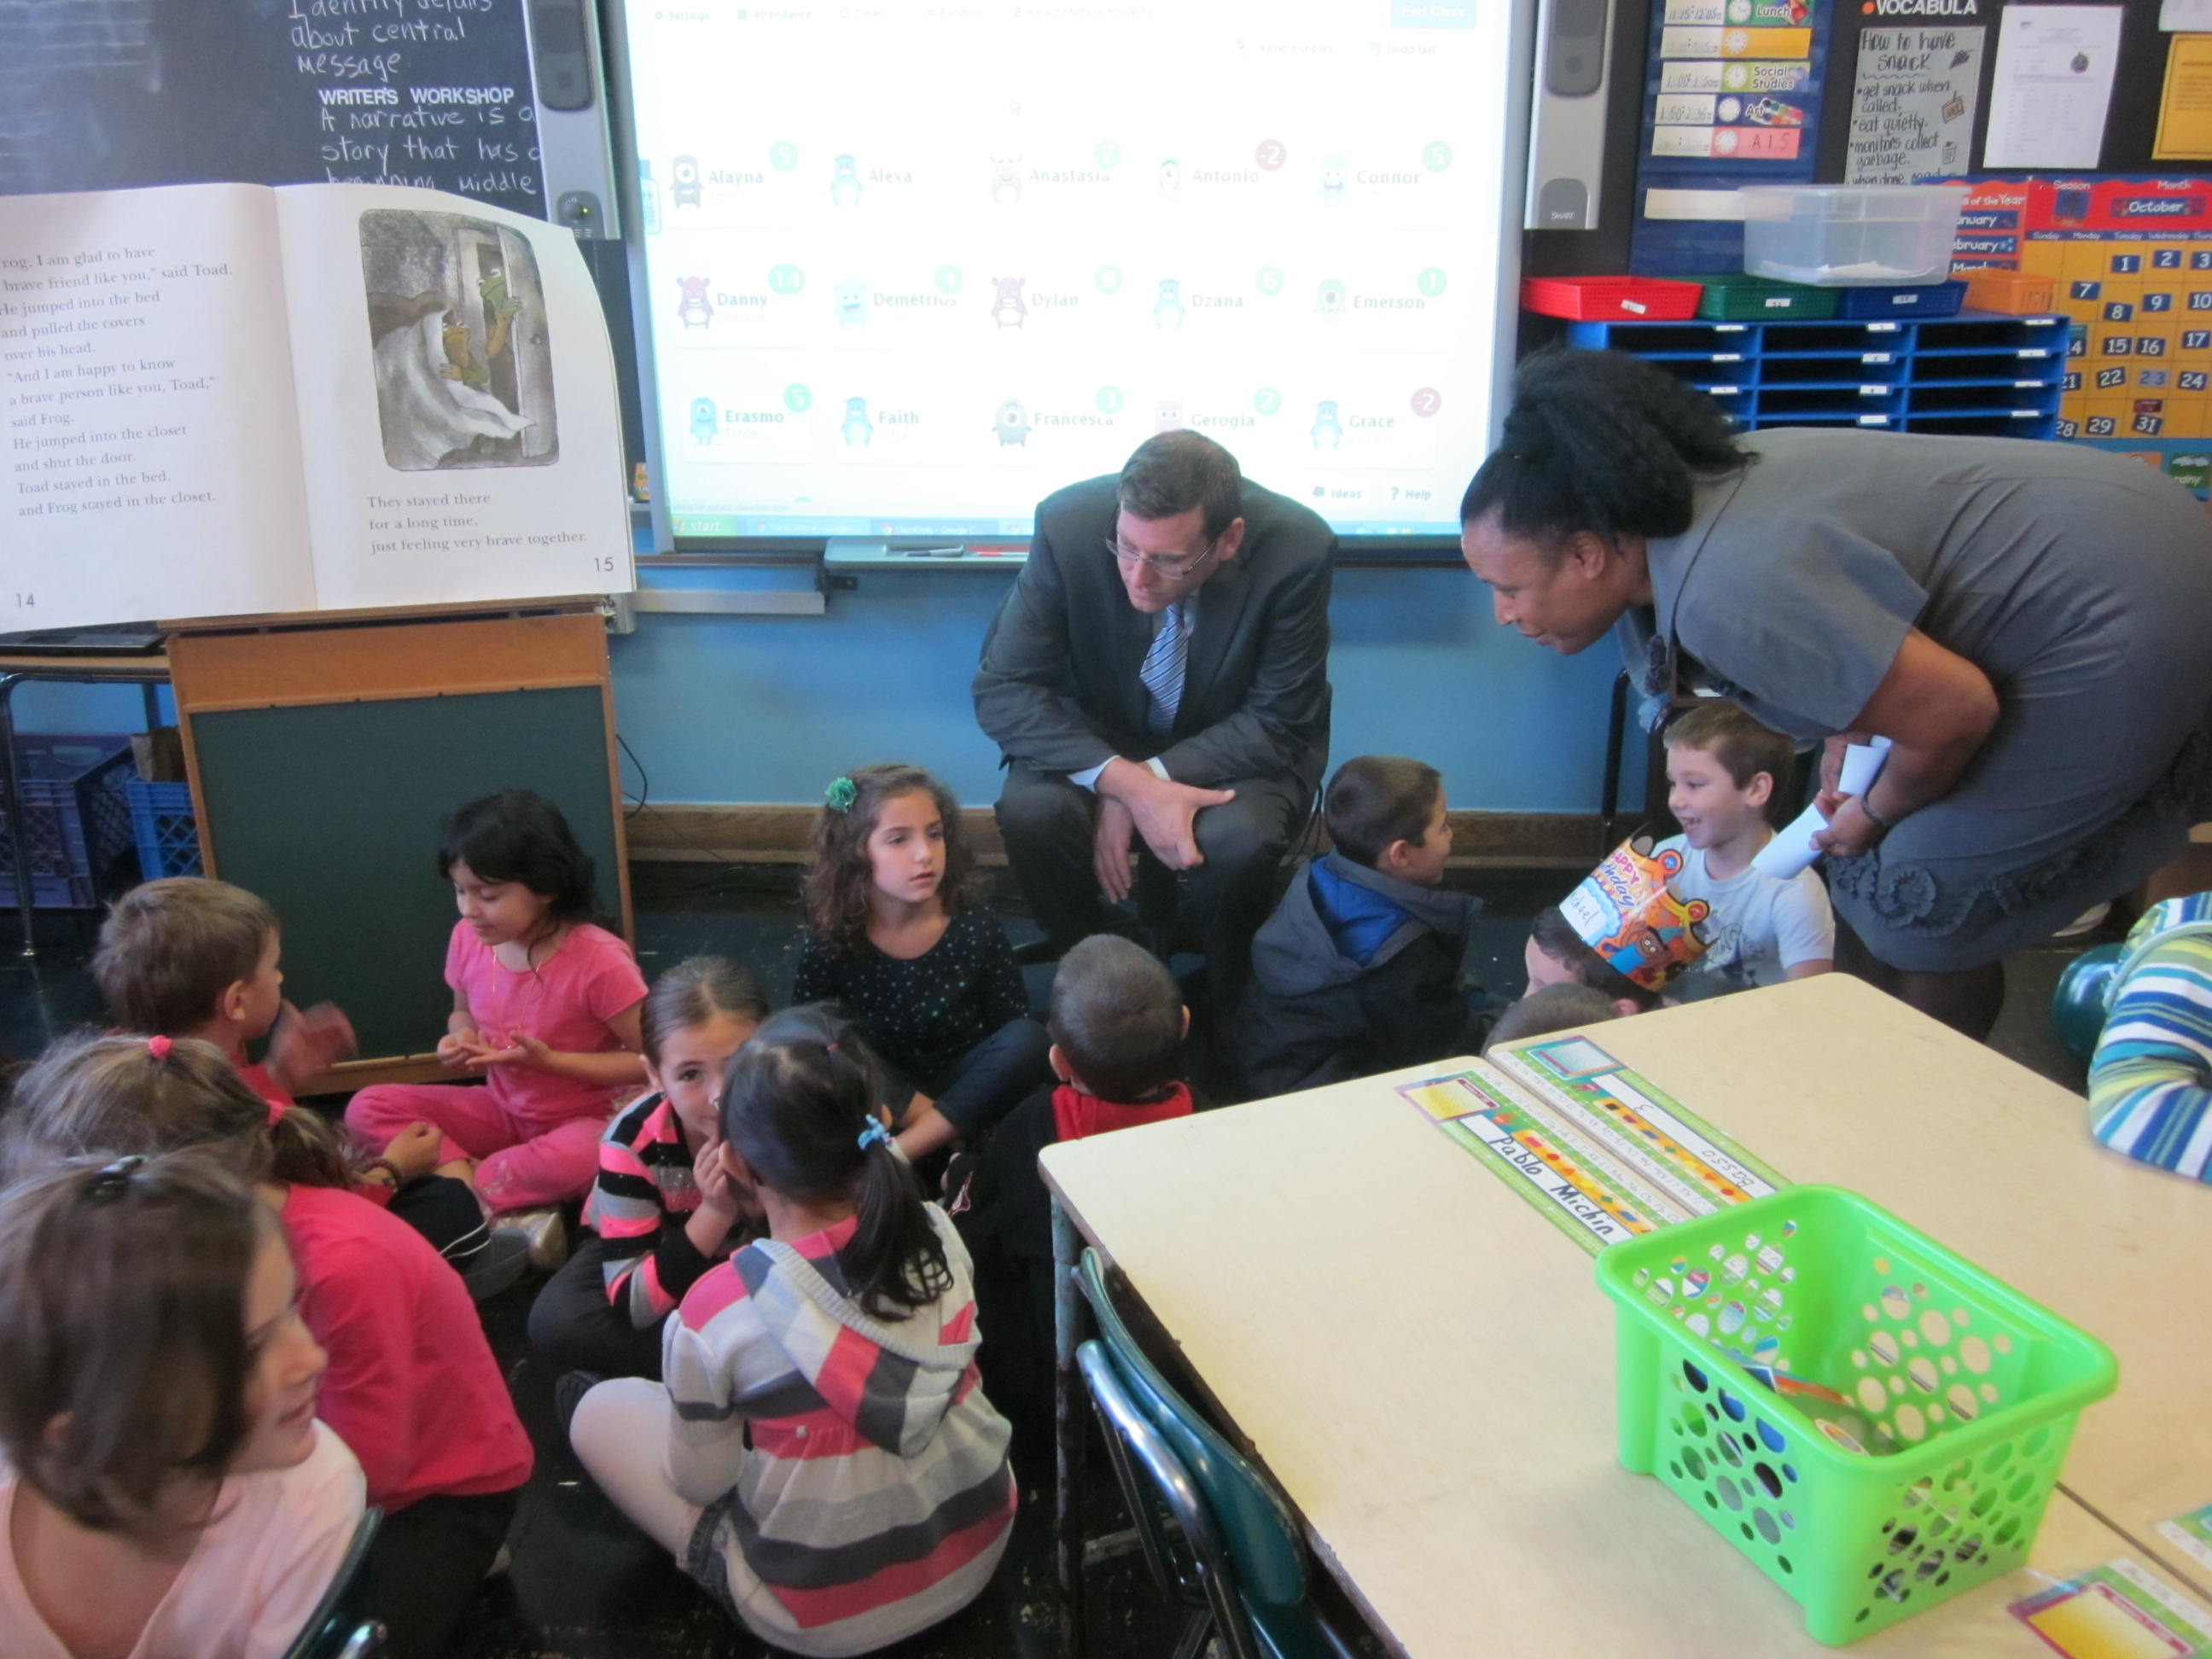 On Monday, October 28, 2013, Assemblyman Braunstein served as Principal for a Day at PS 193. He is pictured here with Principal Joyce Bush visiting a first grade classroom.